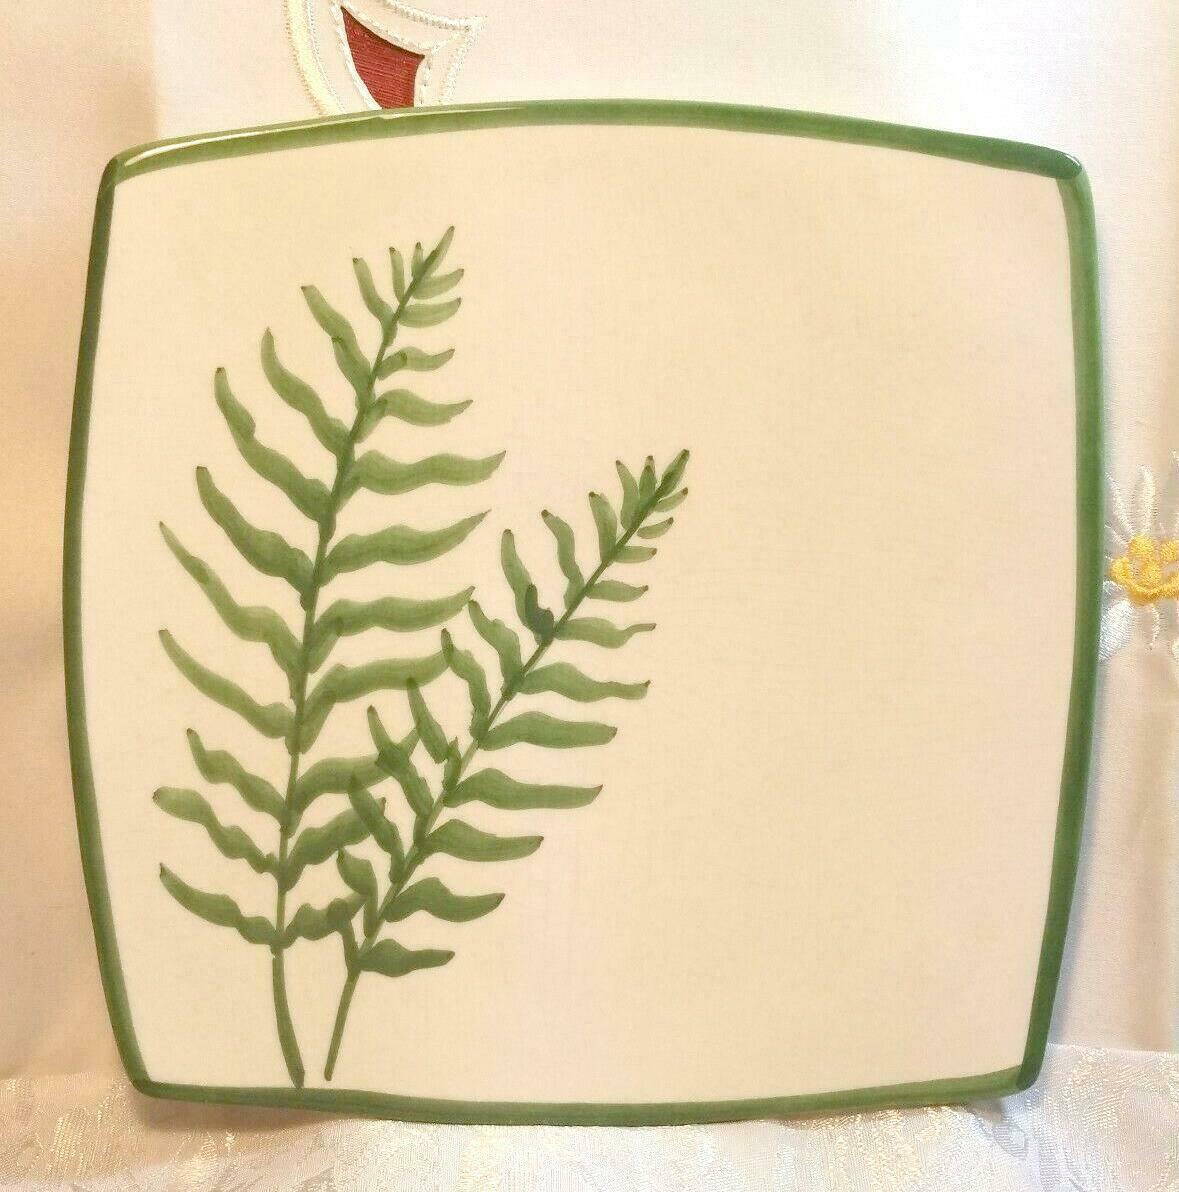 VINTAGE FERN PATTERN SQUARE SERVING PLATE MANCER MADE IN ITALY HAND PAINTED